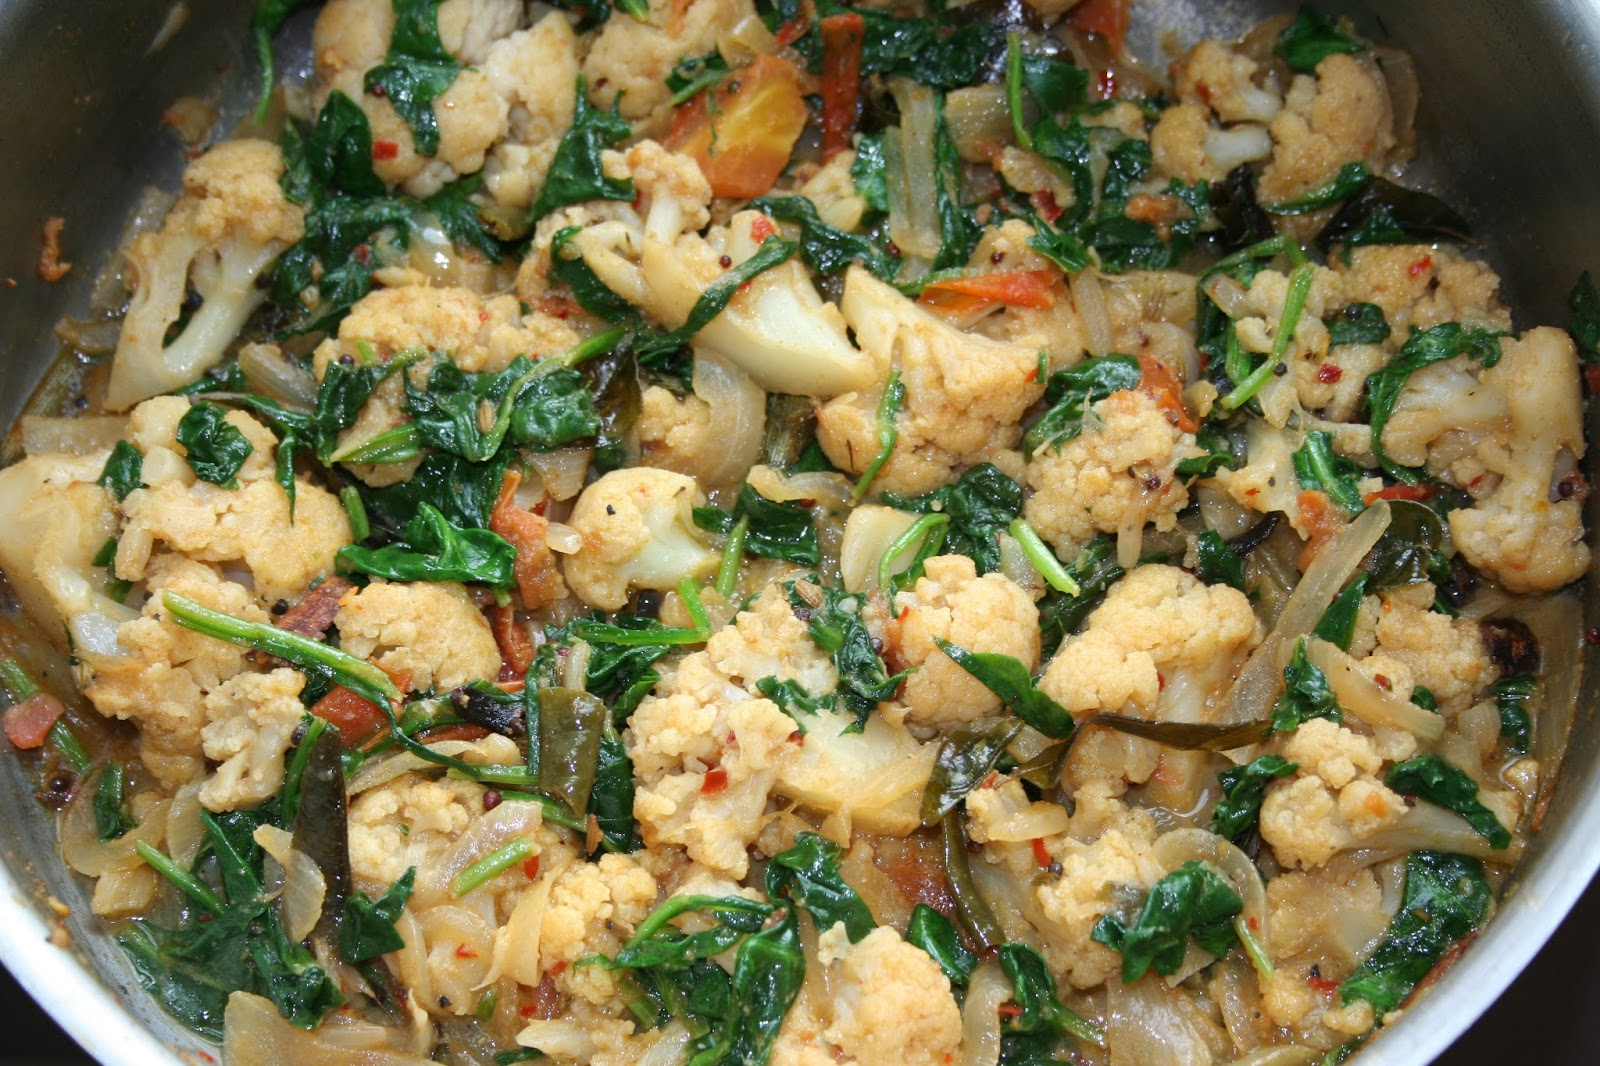 Aasai rasai sri lankan recipes tempered cauliflower with spinach add the spinach quickly turn off the heat toss the leaves around and take it off the hot stove immediately so as not to overcook the spinach forumfinder Image collections